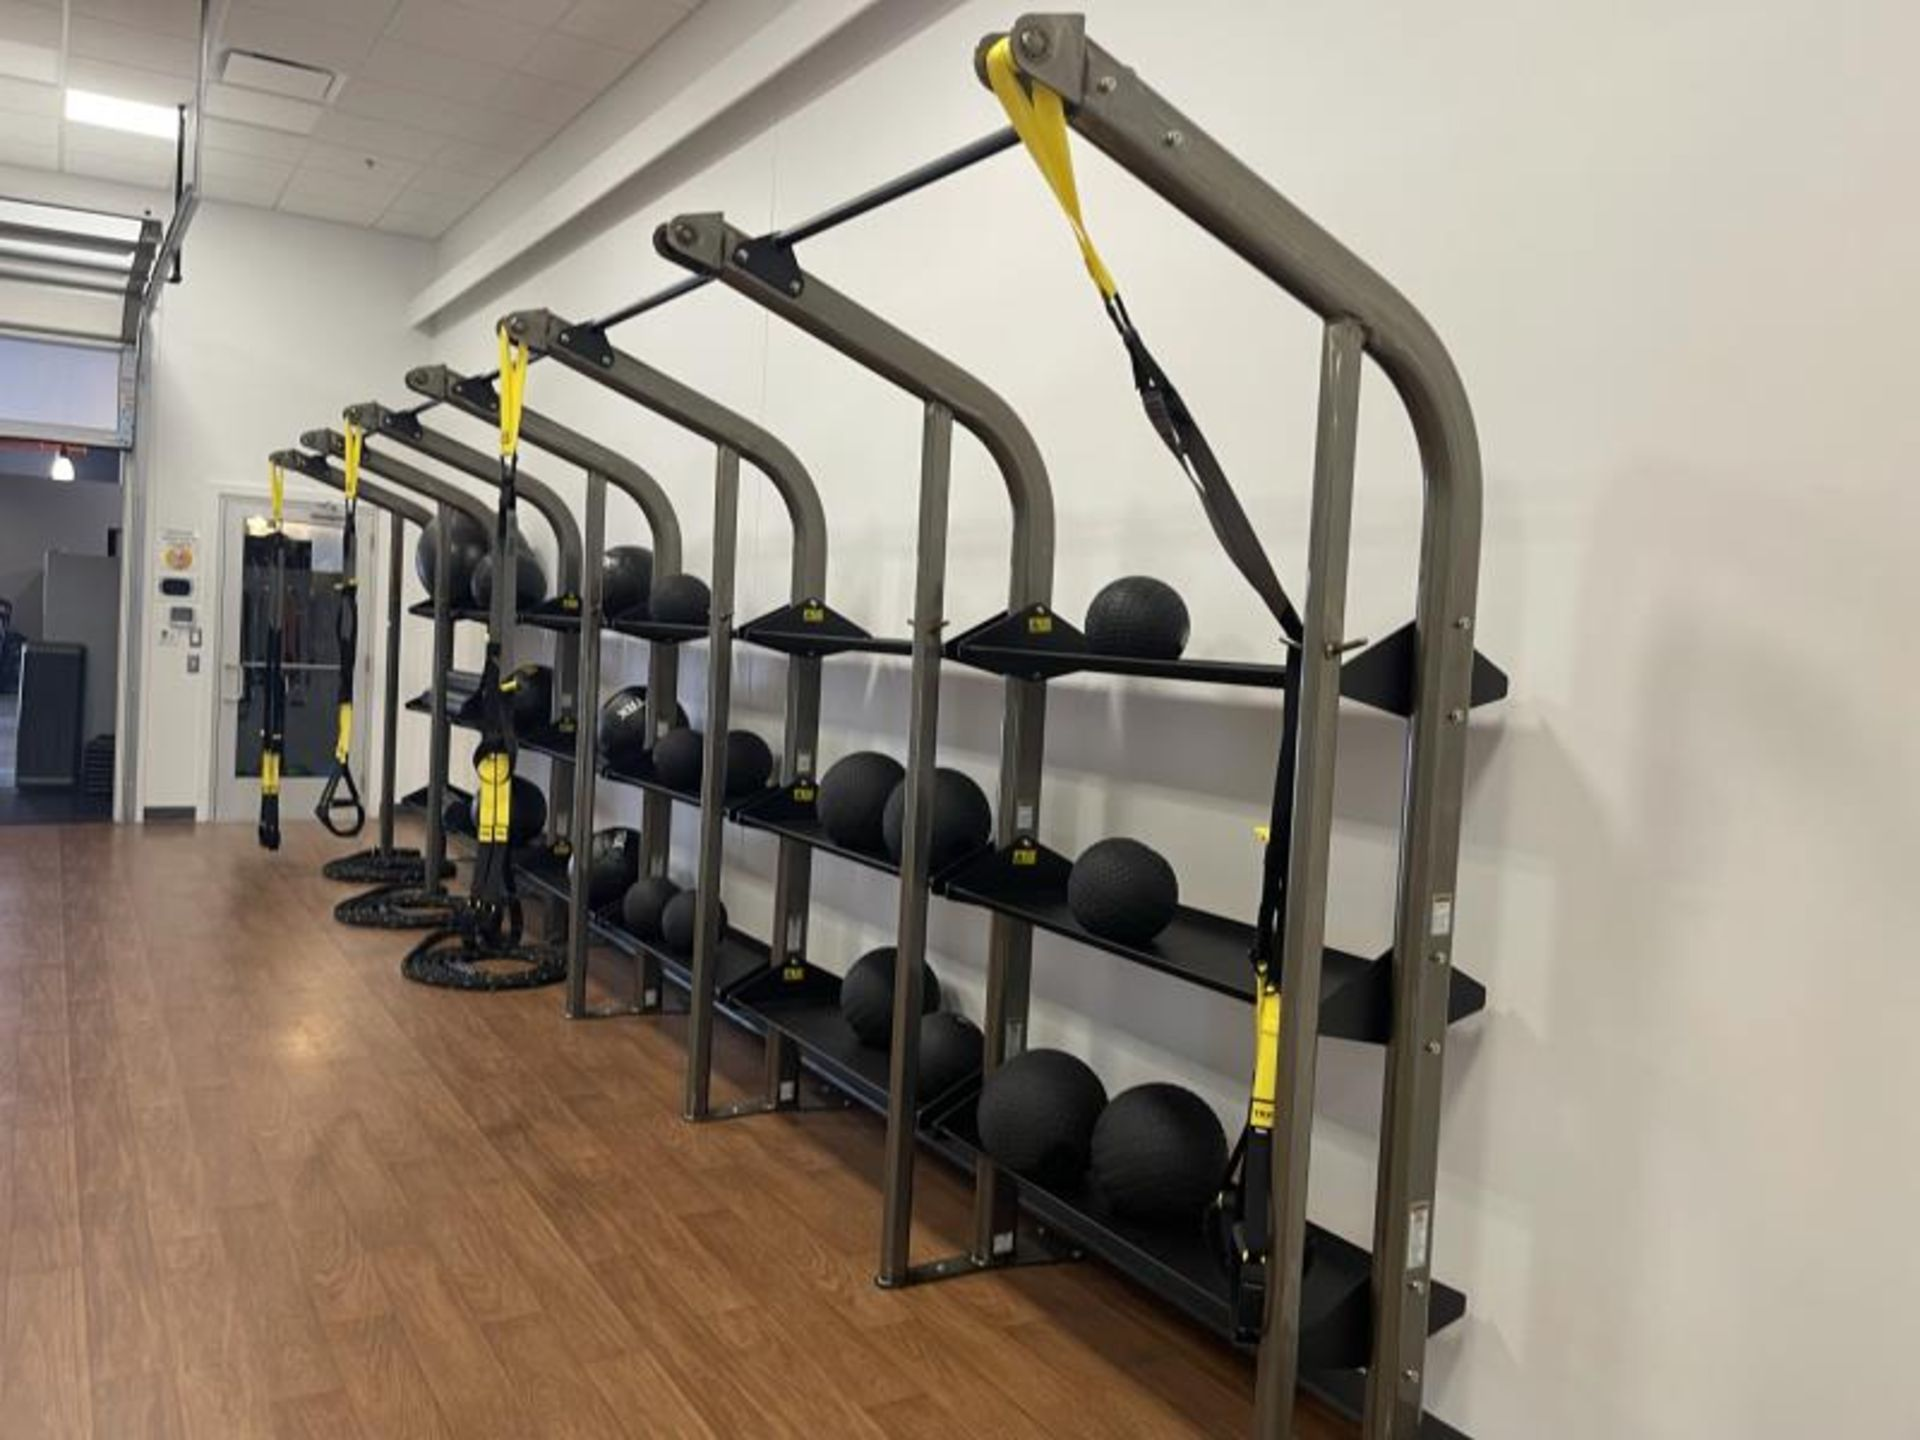 Life Fitness SYNRGY Wall Rack Training System, TRX Training System Straps, Rope, Balls - Image 6 of 8